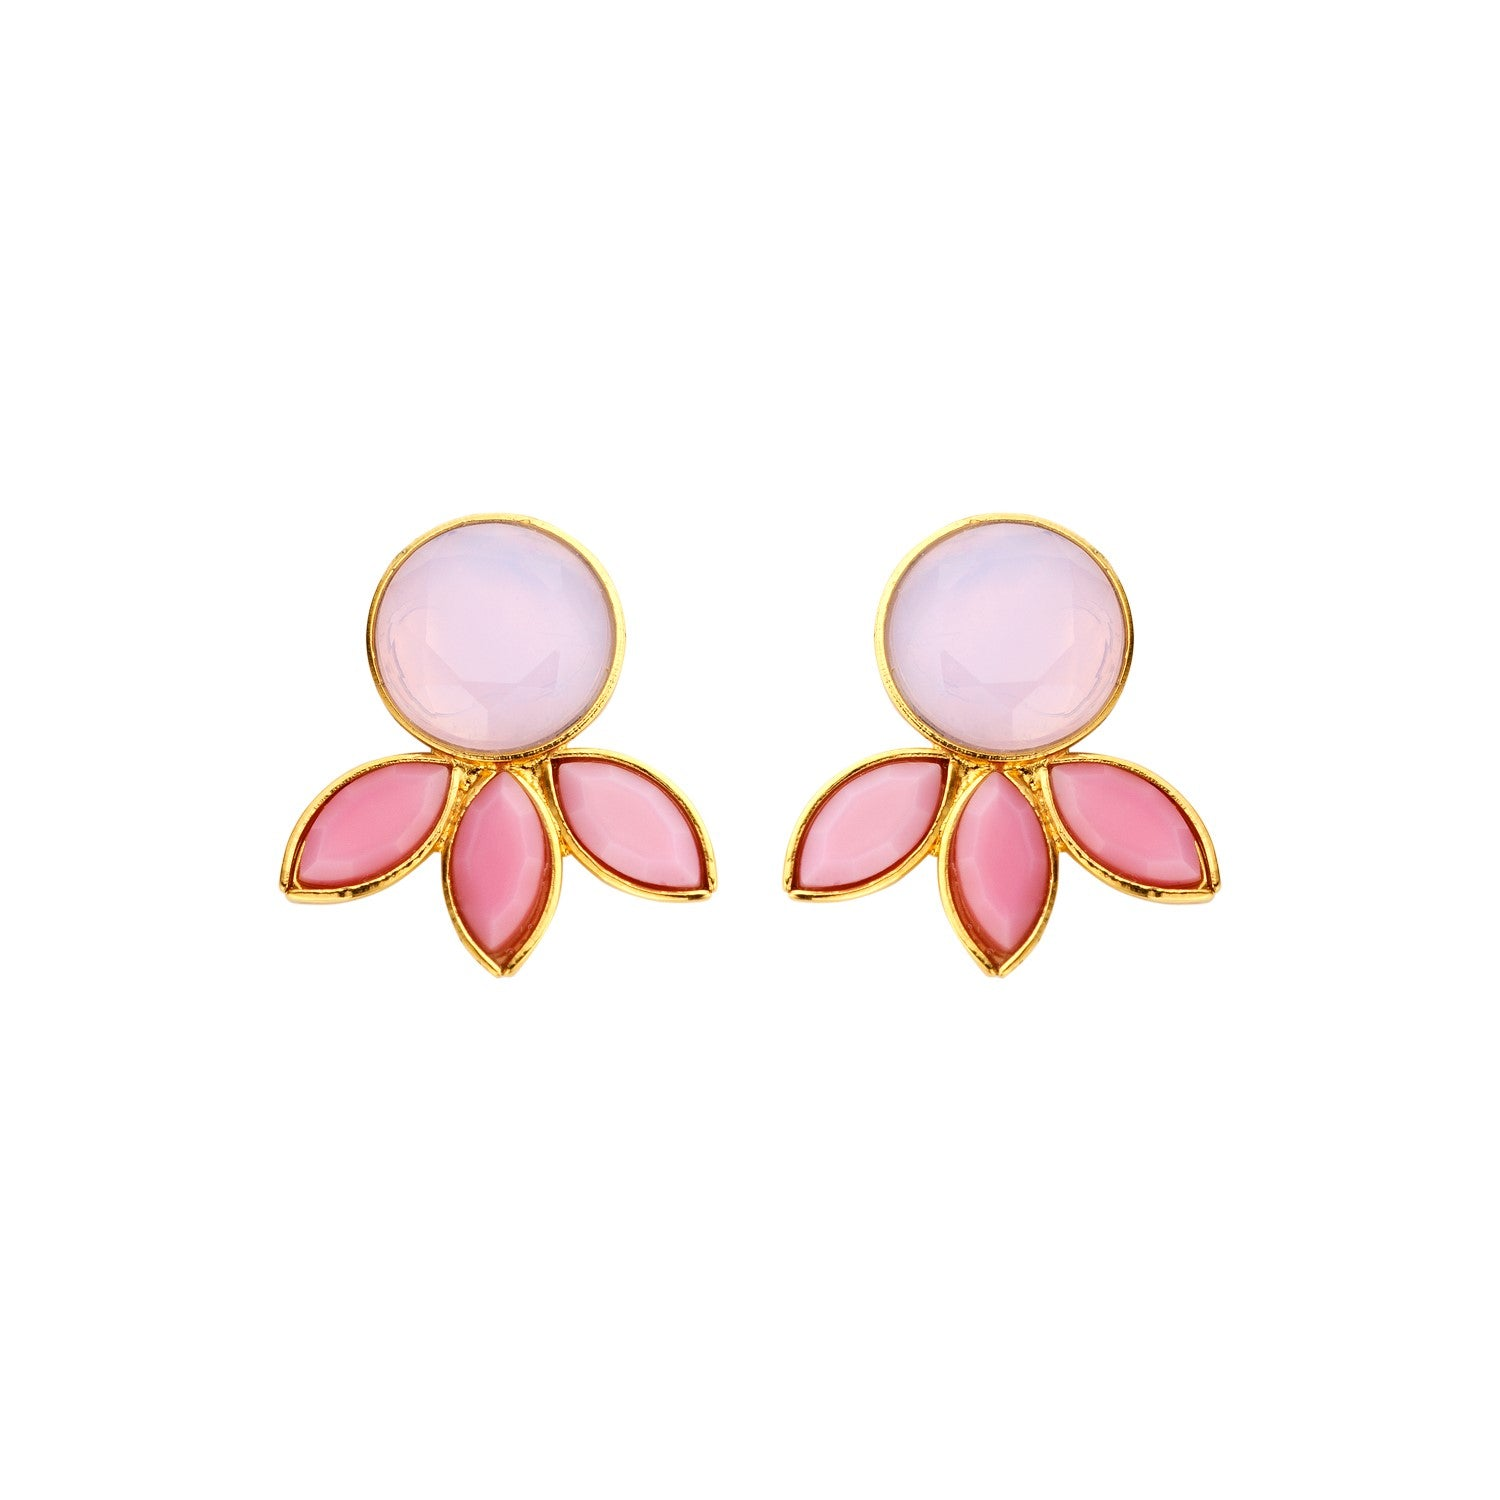 Palm Navet milk rose earrings - Souvenirs de Pomme